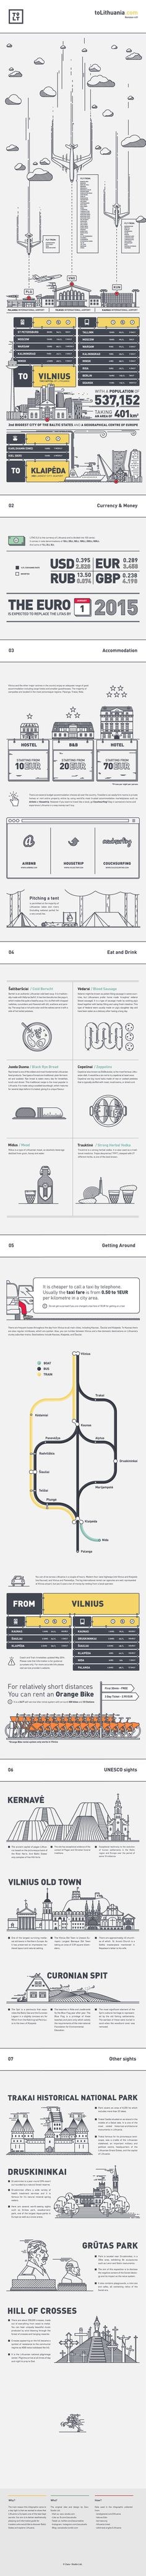 Go To Lithuania infographic #tourism #vector #lithuania #infographic #travel #illustration #behance #minimal #linear